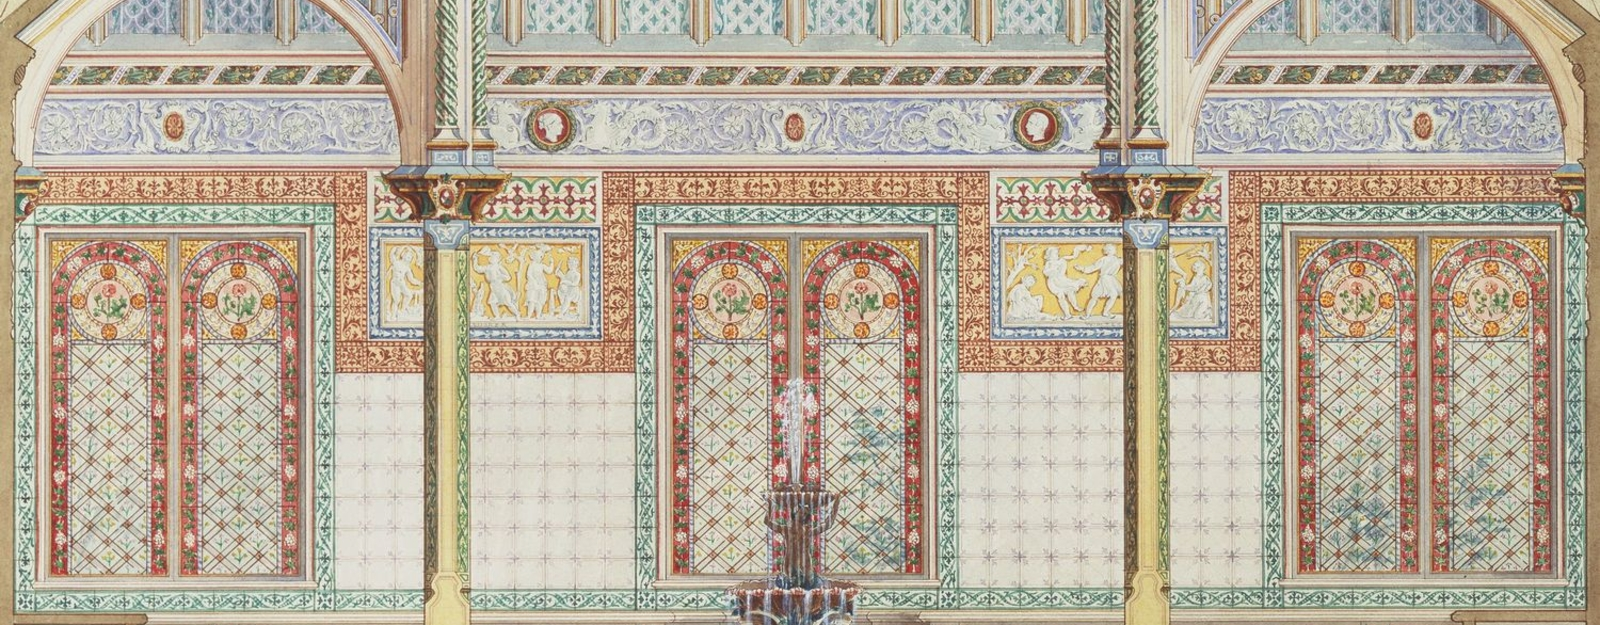 A watercolour depicting a large room with beamed ceiling, stained and leaded windows, decorative tiles on walls and friezes between the two windows; a fountain in the centre. This watercolour is a design for the Royal Dairy in Windsor Home Park. Below are